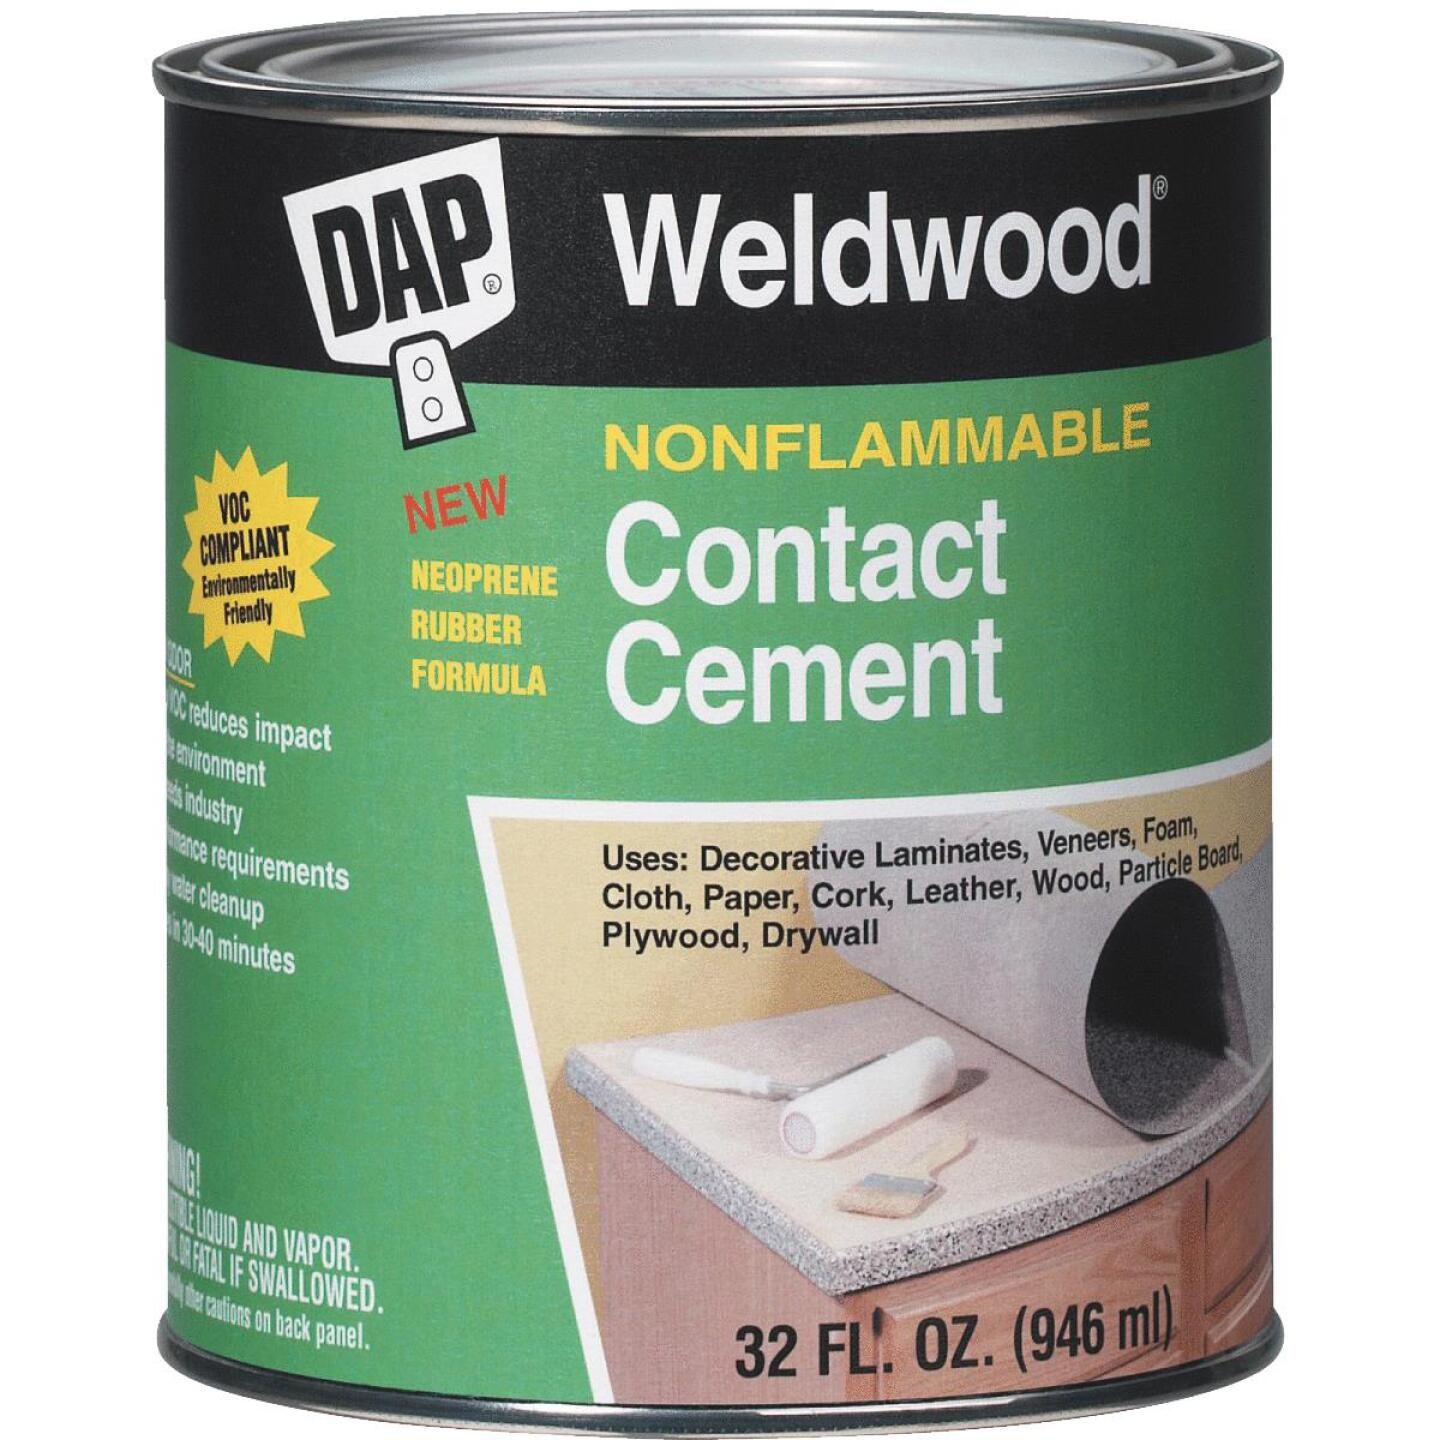 DAP Weldwood Qt. Nonflammable Contact Cement Image 1